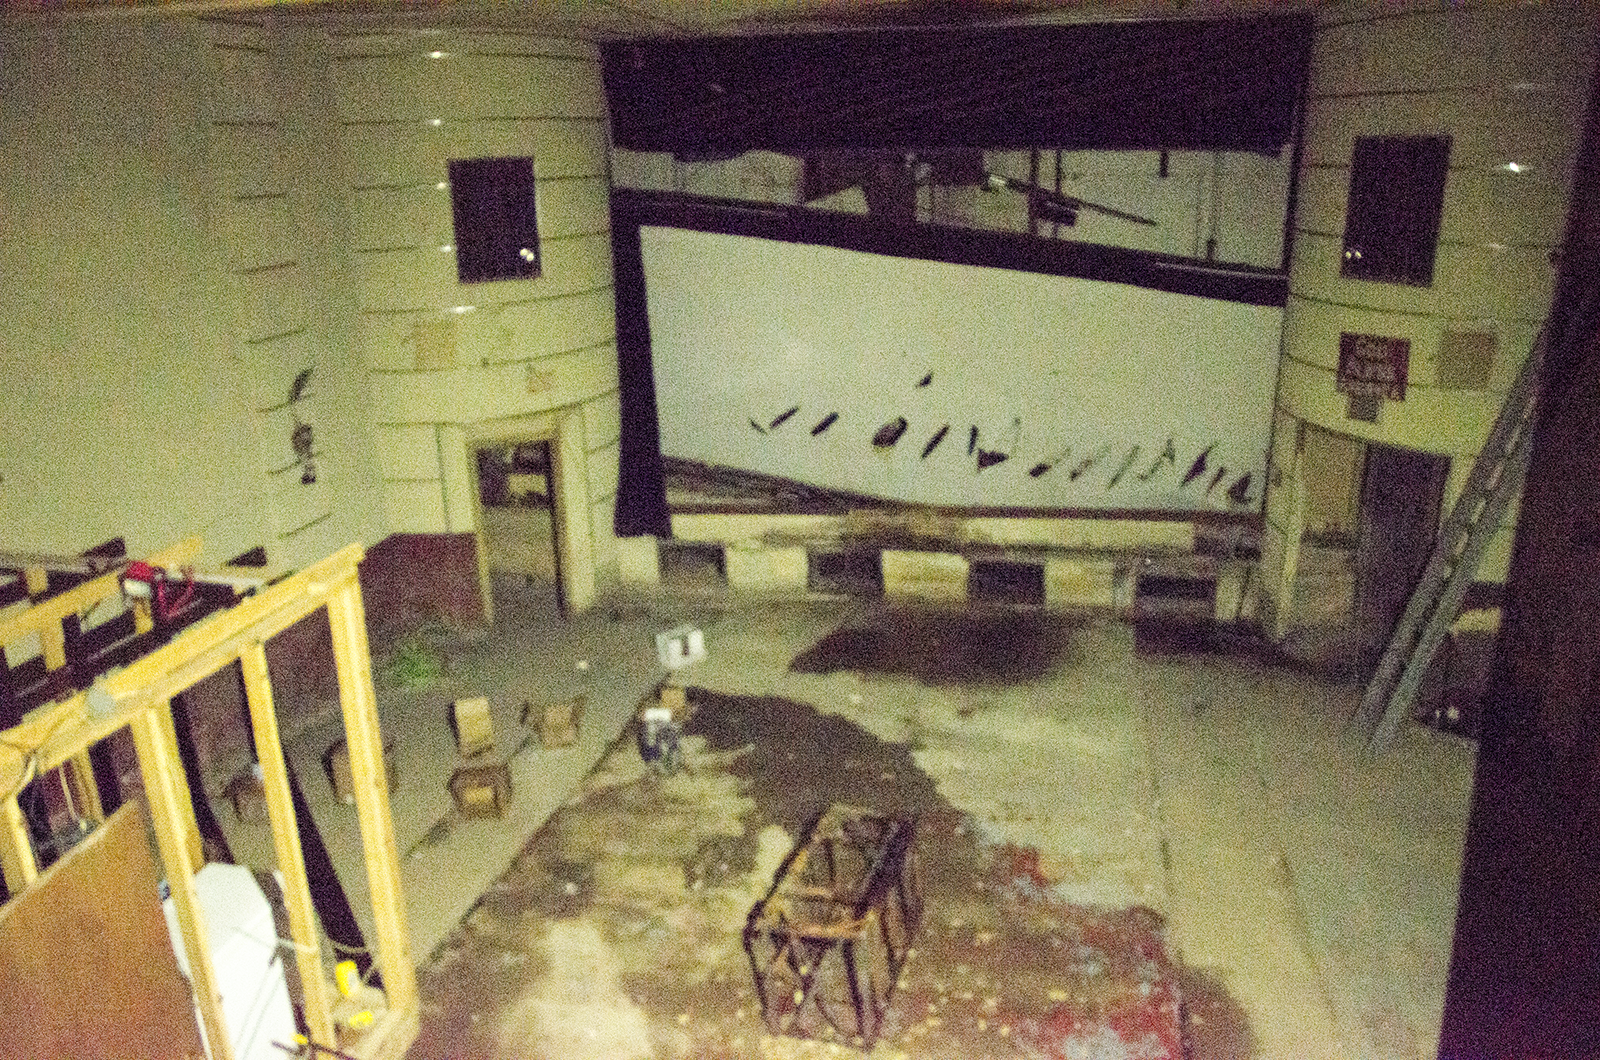 Photo of theater taken in near-pitch-black conditions.  Kolb hopes to apply for a grant to refurbish   the location and make it into a live dinner theater.